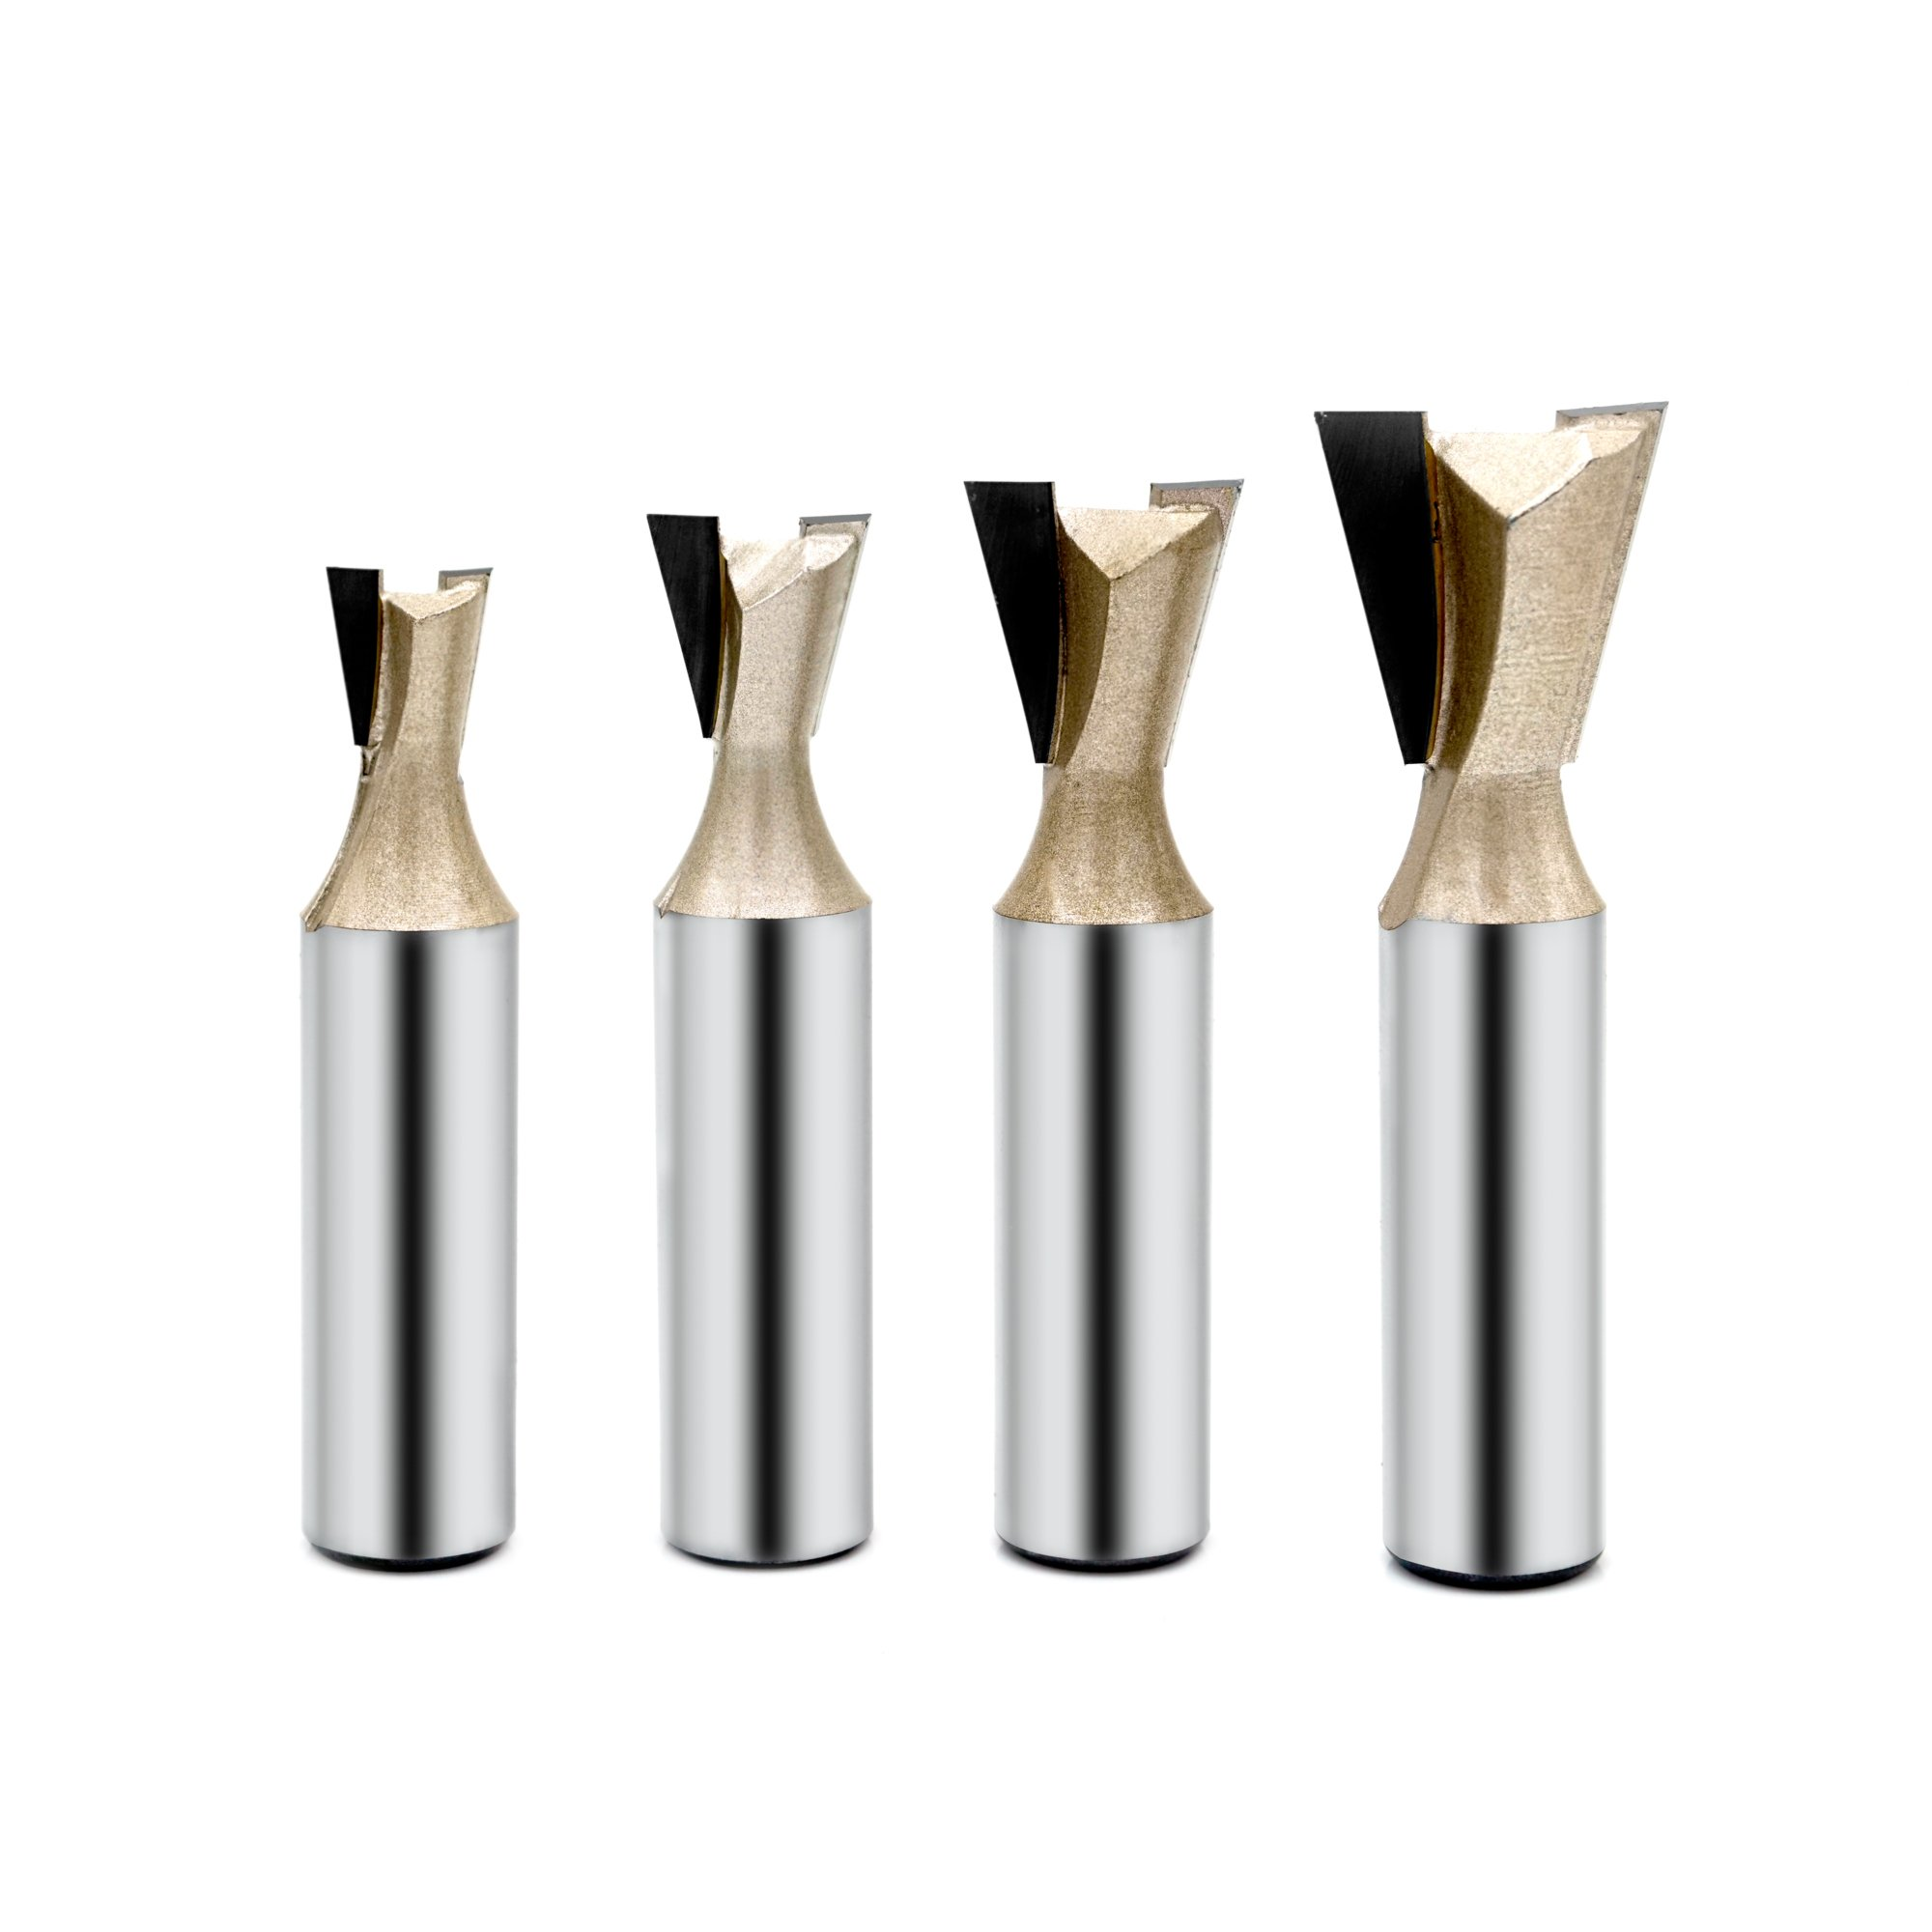 "4pcs Dovetail Router Bit, Gazeto Carbide Tip 3/8"" 1/2"" 5/8"" 3/4"" Rounter Bit, 1/2-Inch Shank"